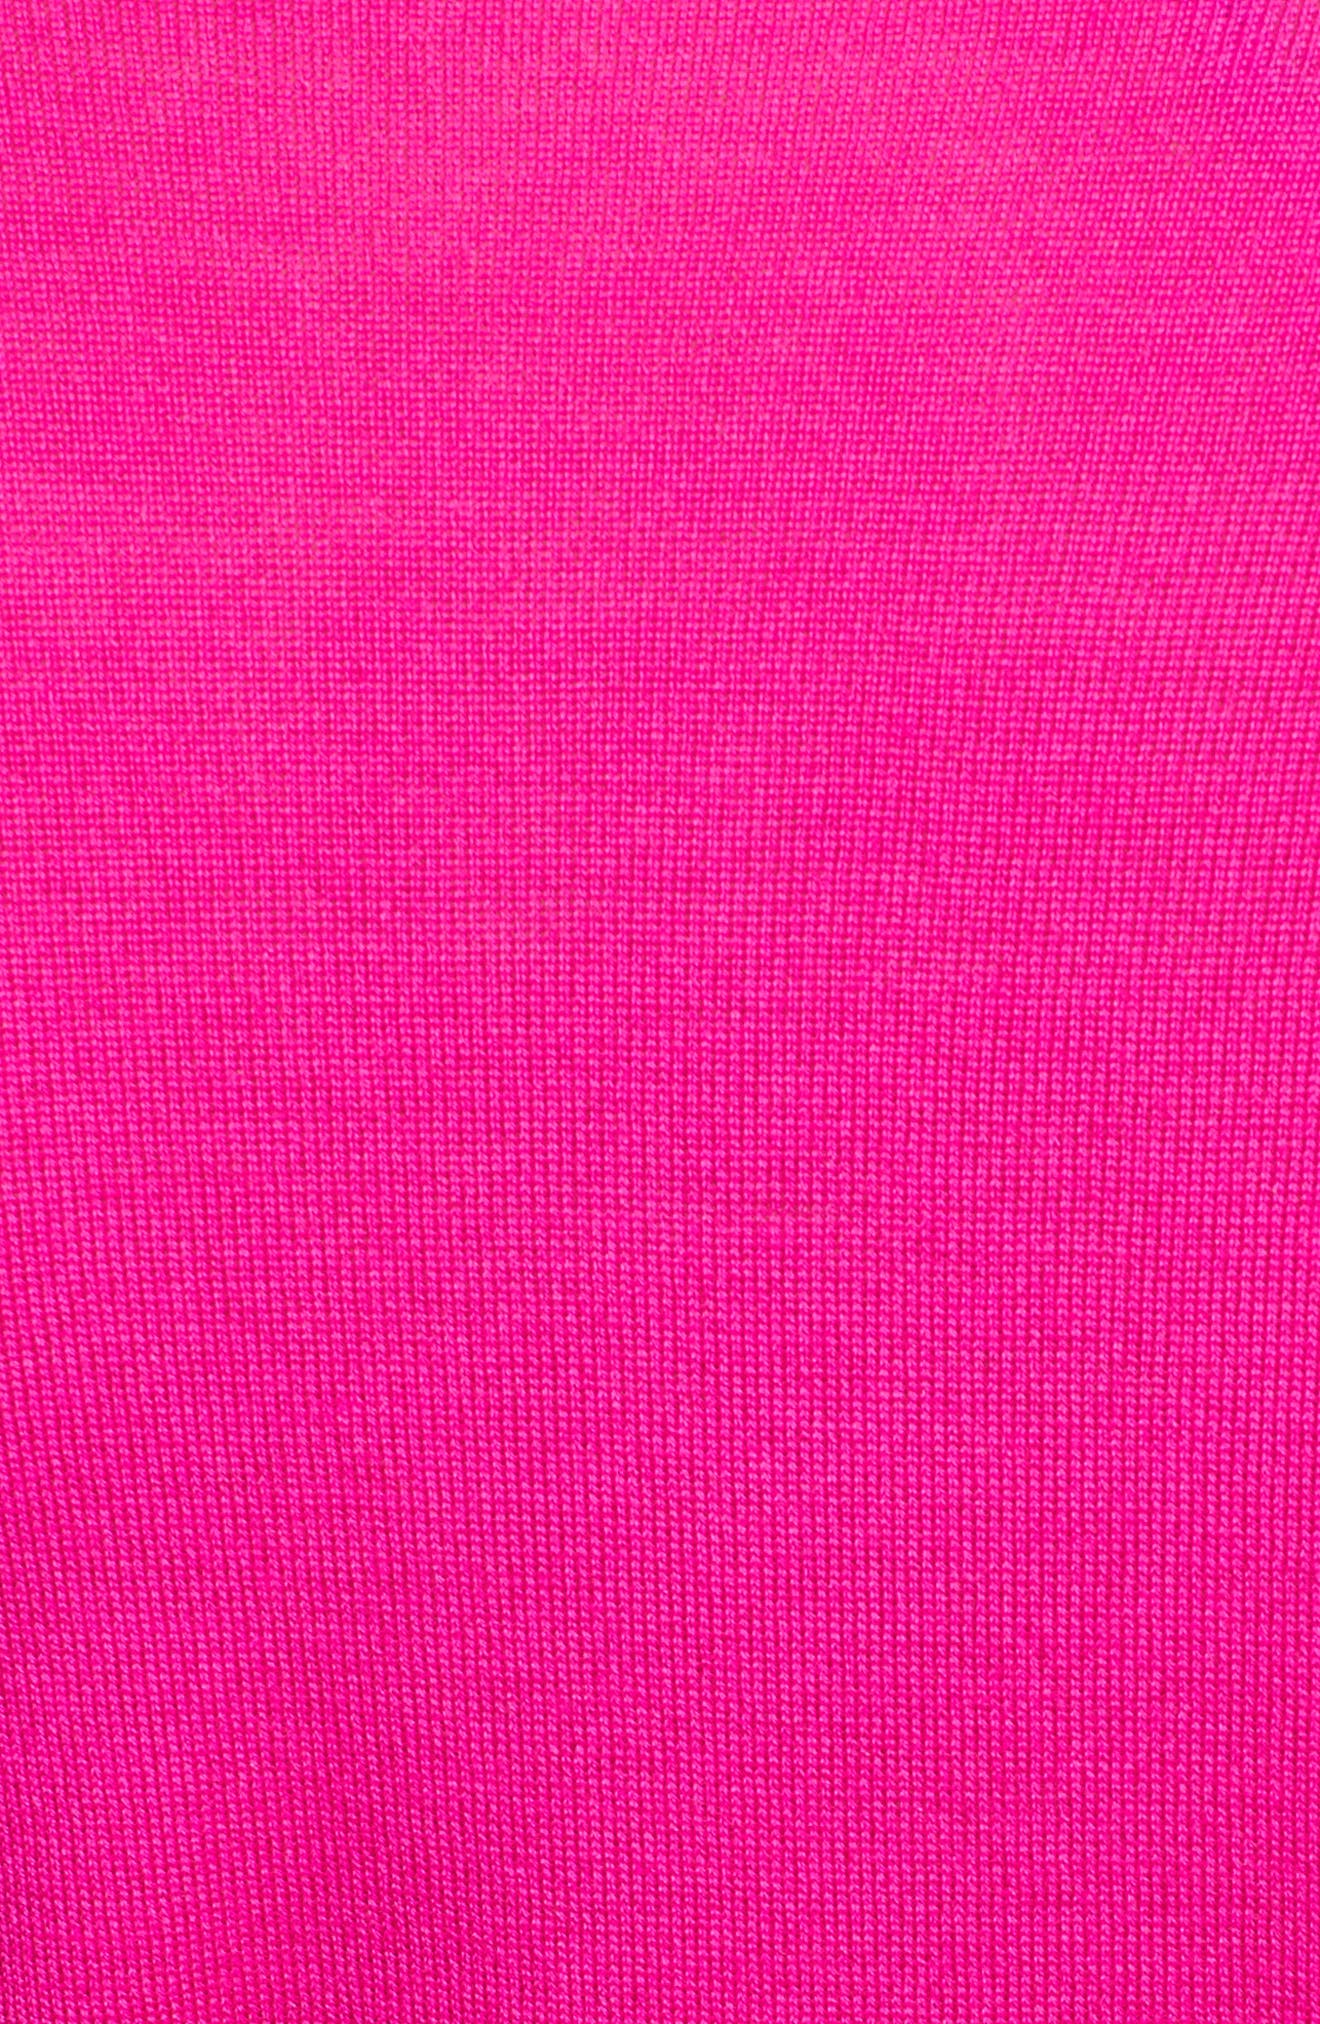 Plunging V-Neck Merino Wool Sweater,                             Alternate thumbnail 3, color,                             Electric Pink